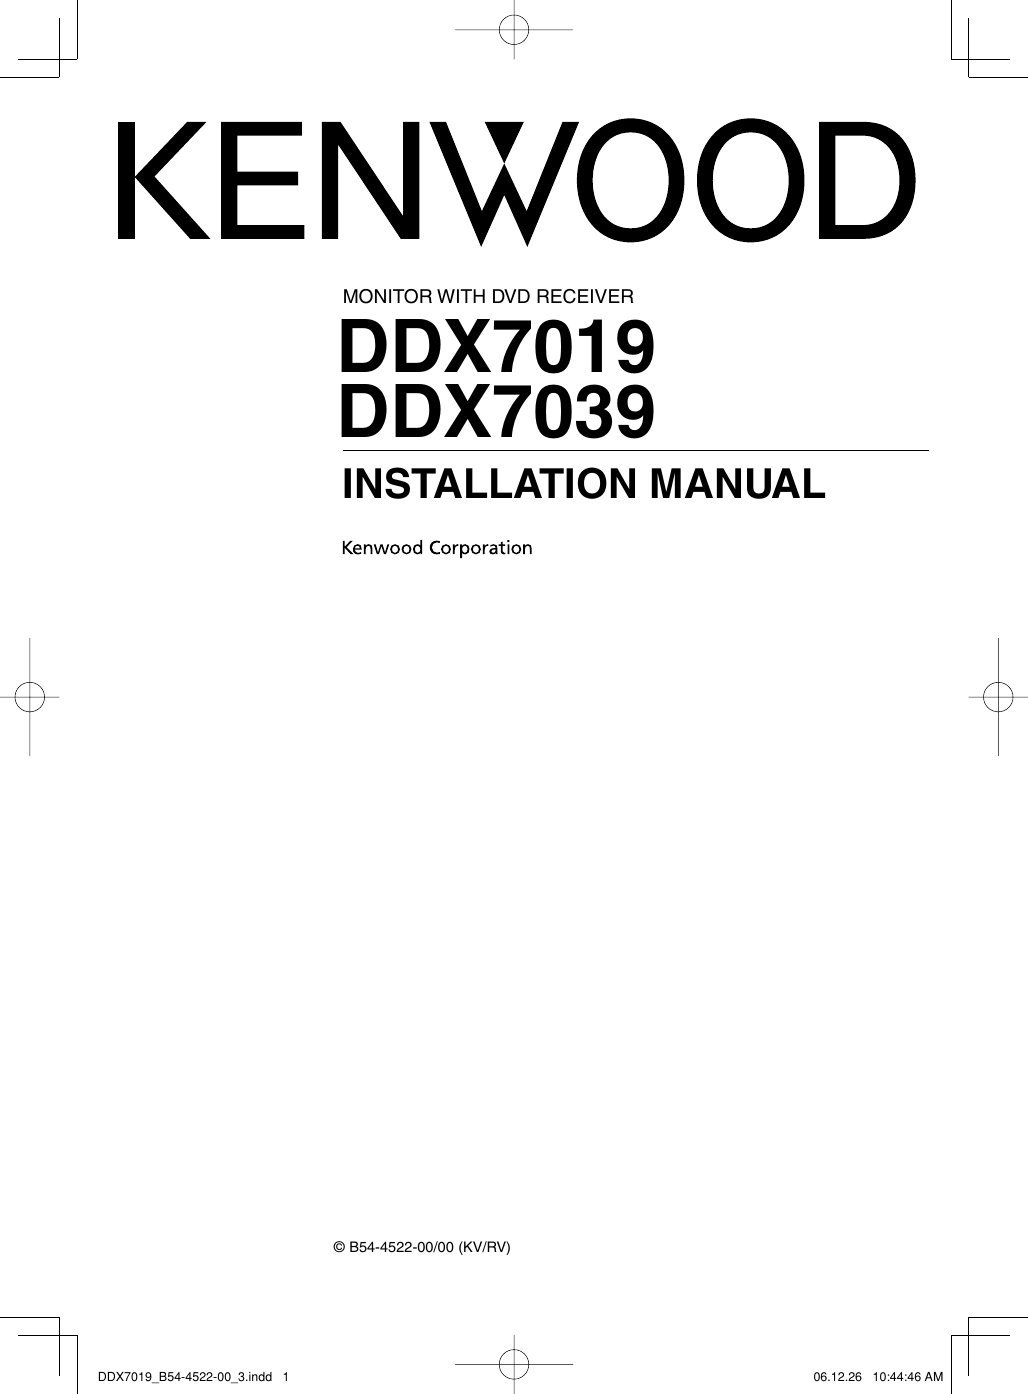 kenwood ddx7019 b54 4522 00 3 if not then manualsddx7019